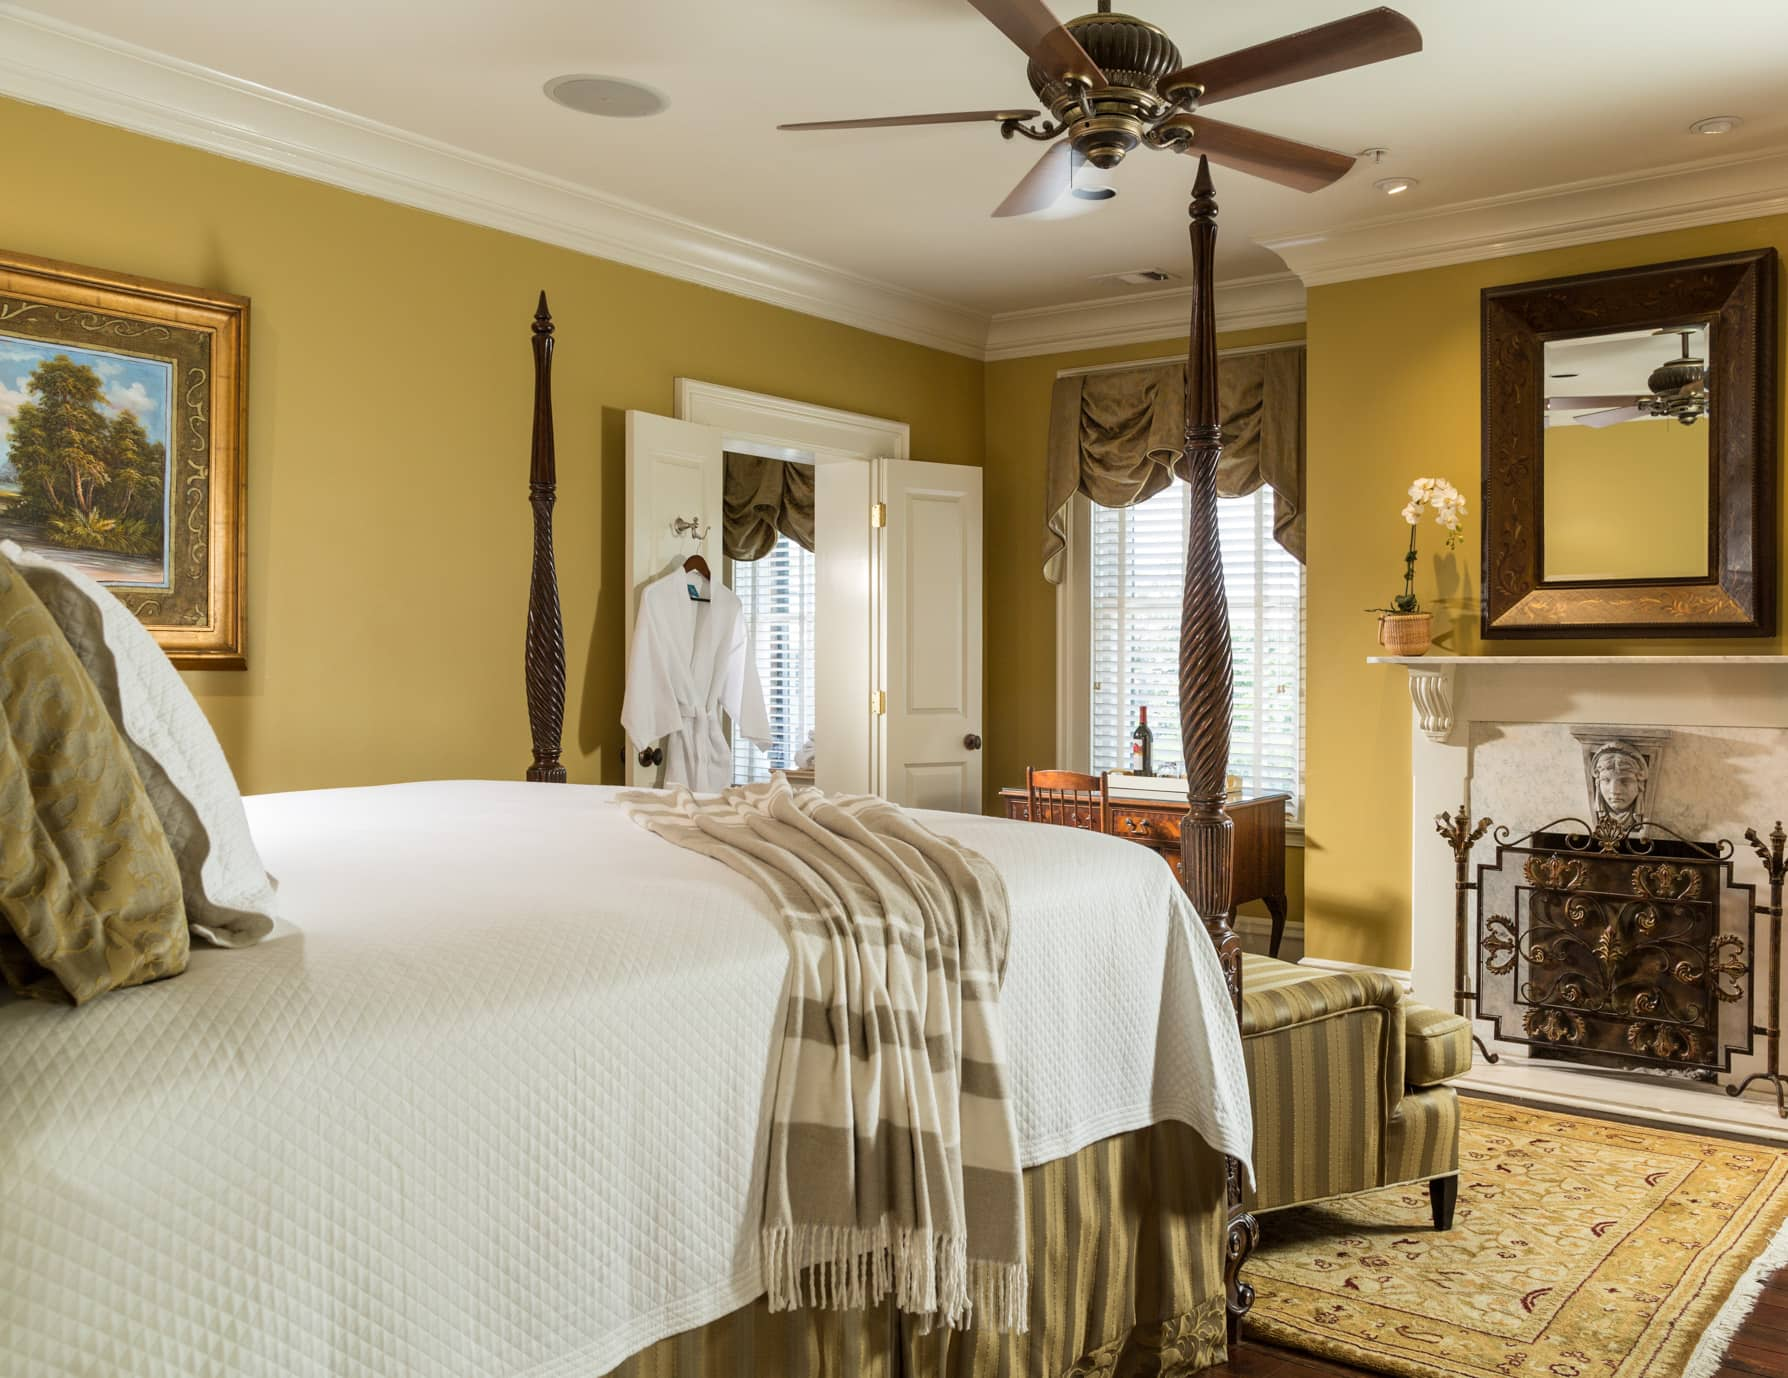 Spacious room with a king bed and fireplace